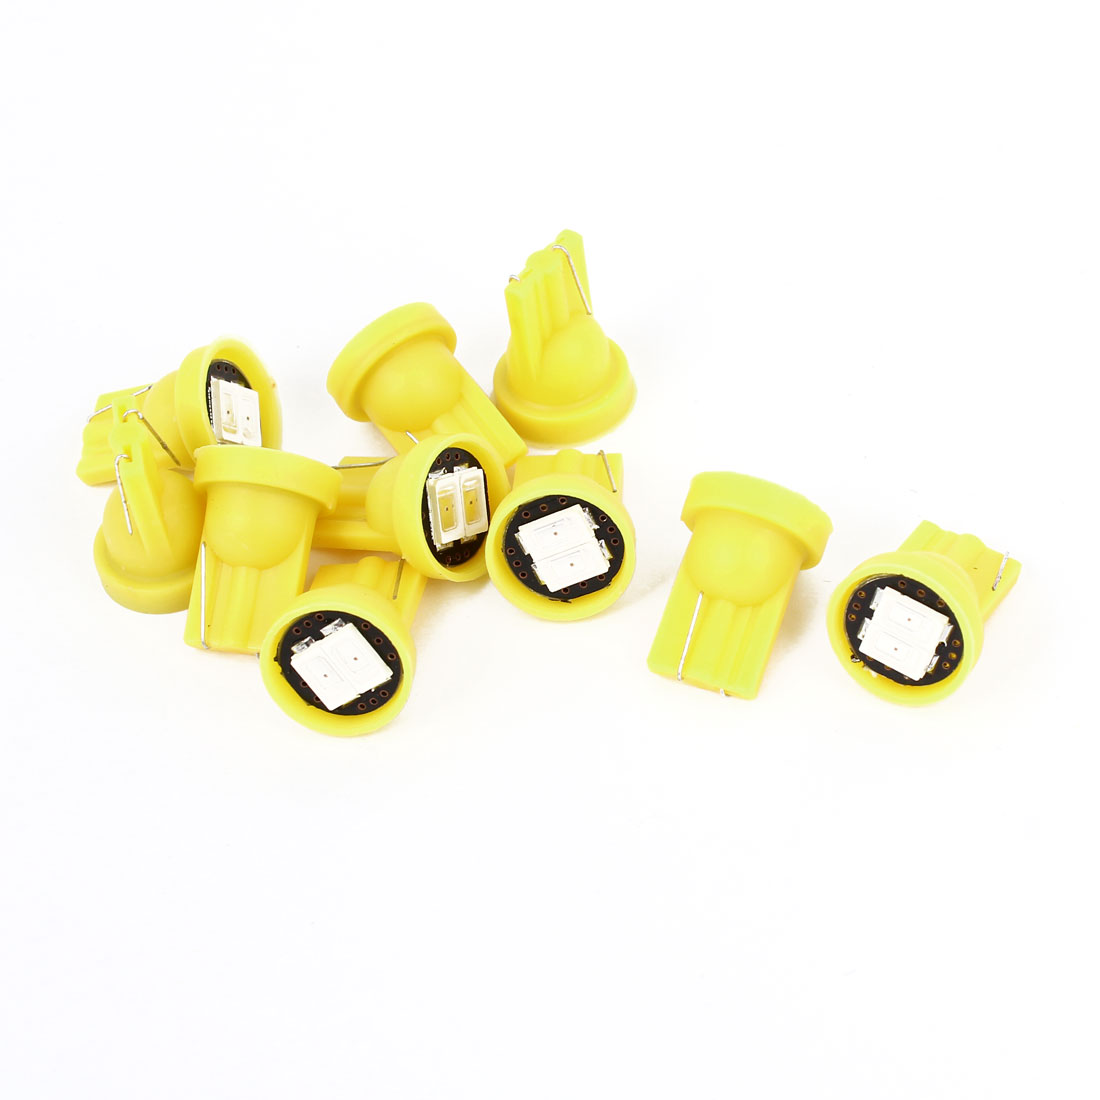 Car T10 W5W 2 5630 SMD LED Wedge Dashboard Bulb Light Yellow 12V 10 Pcs internal